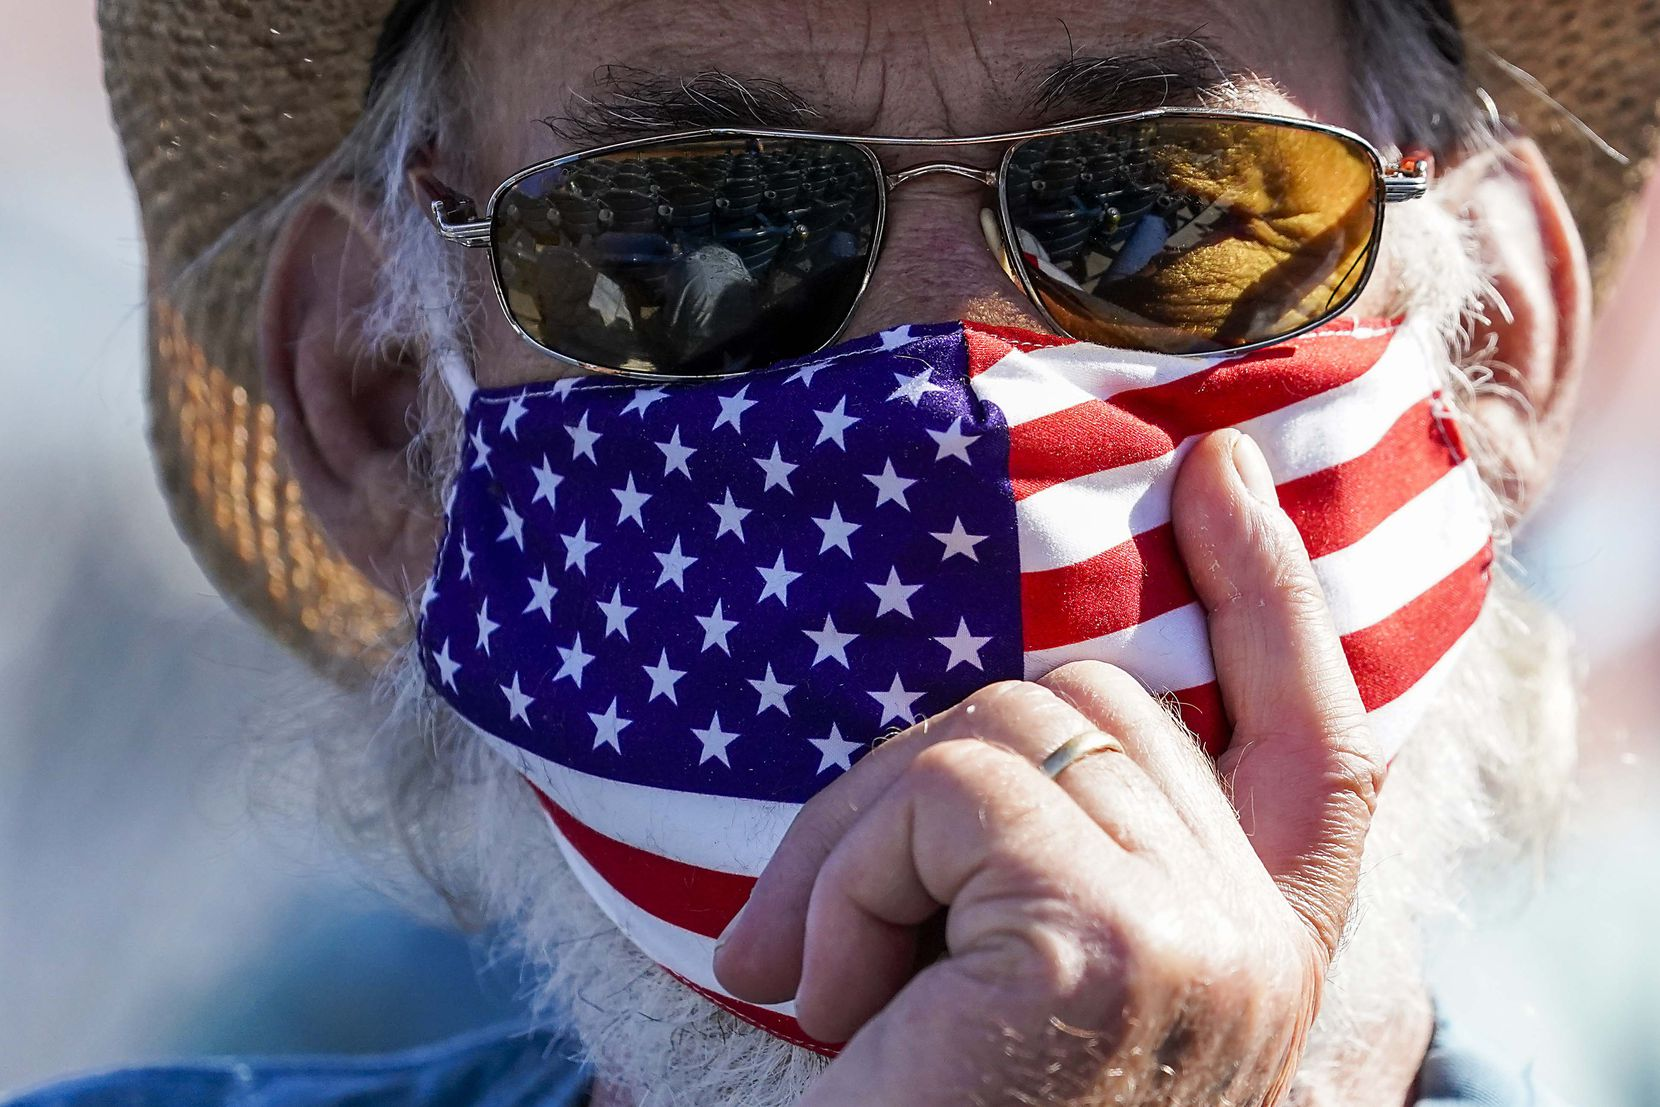 A fan wears an American flag face covering during the fourth inning of a spring training game between the Texas Rangers and the Seattle Mariners at Peoria Sports Complex on Wednesday, March 10, 2021, in Peoria, Ariz.